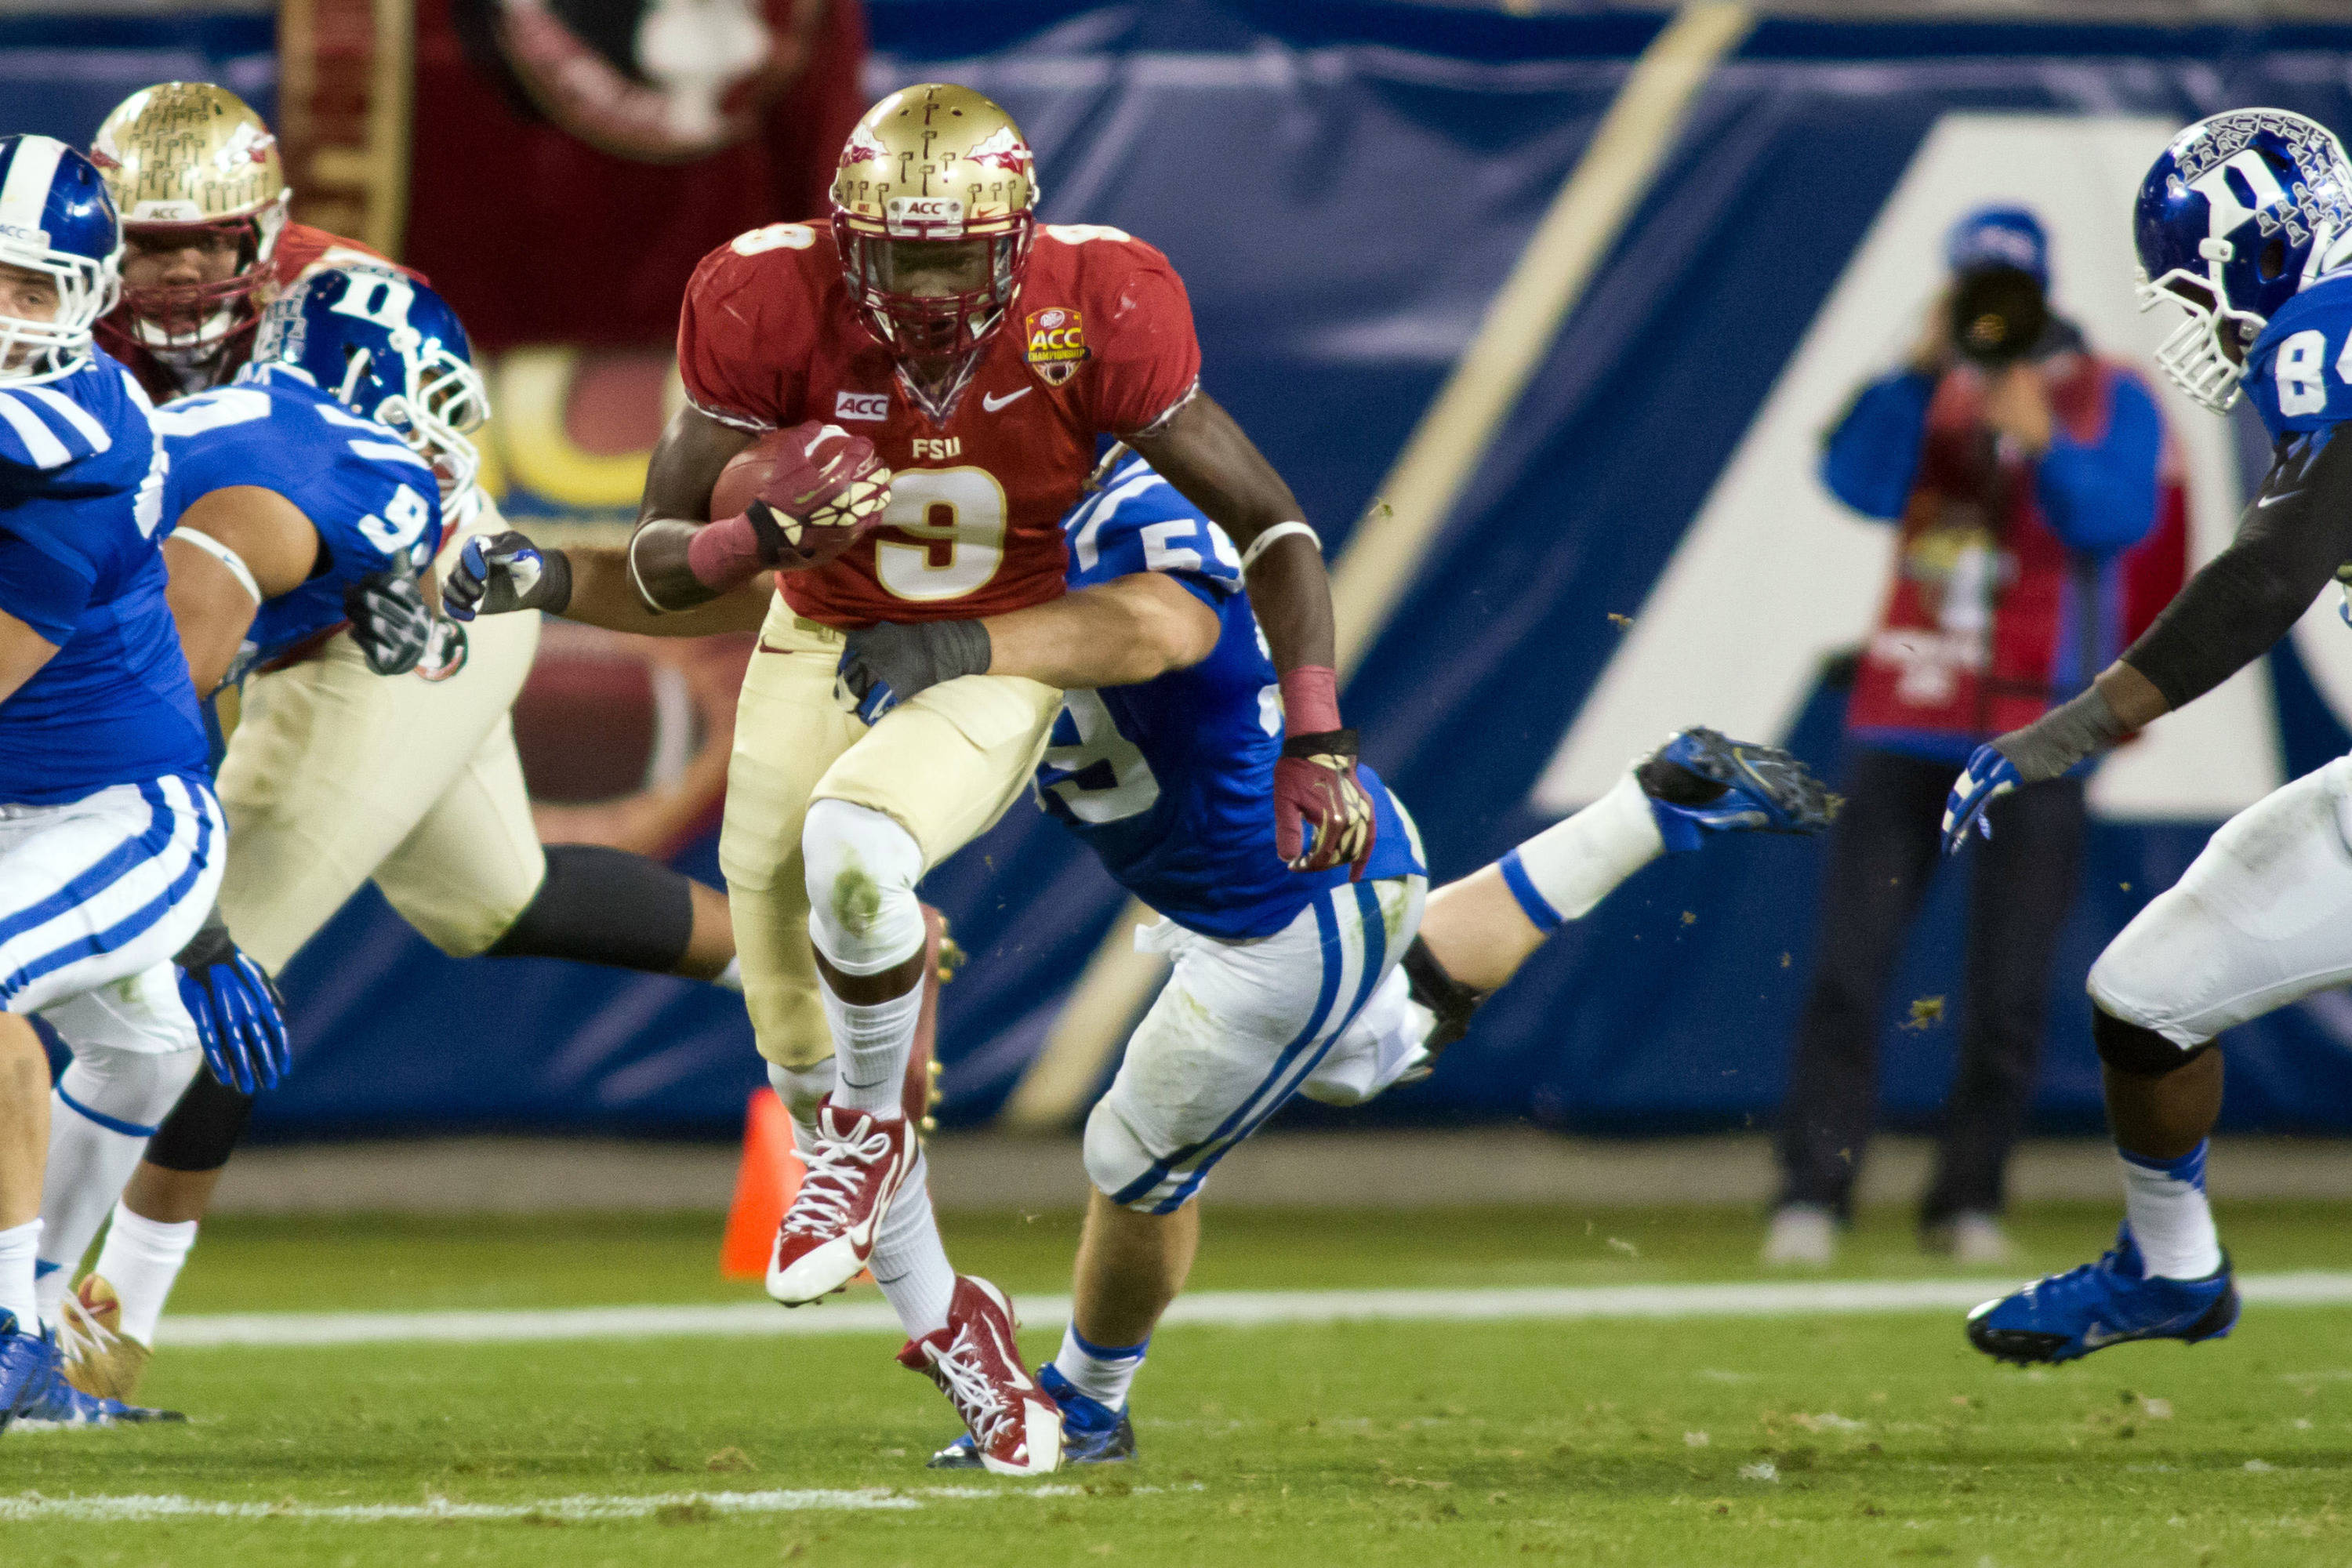 Dec 7, 2013; Charlotte, NC, USA; Florida State Seminoles running back Karlos Williams (9) runs the ball during the second quarter against the Duke Blue Devils at Bank of America Stadium. Mandatory Credit: Jeremy Brevard-USA TODAY Sports